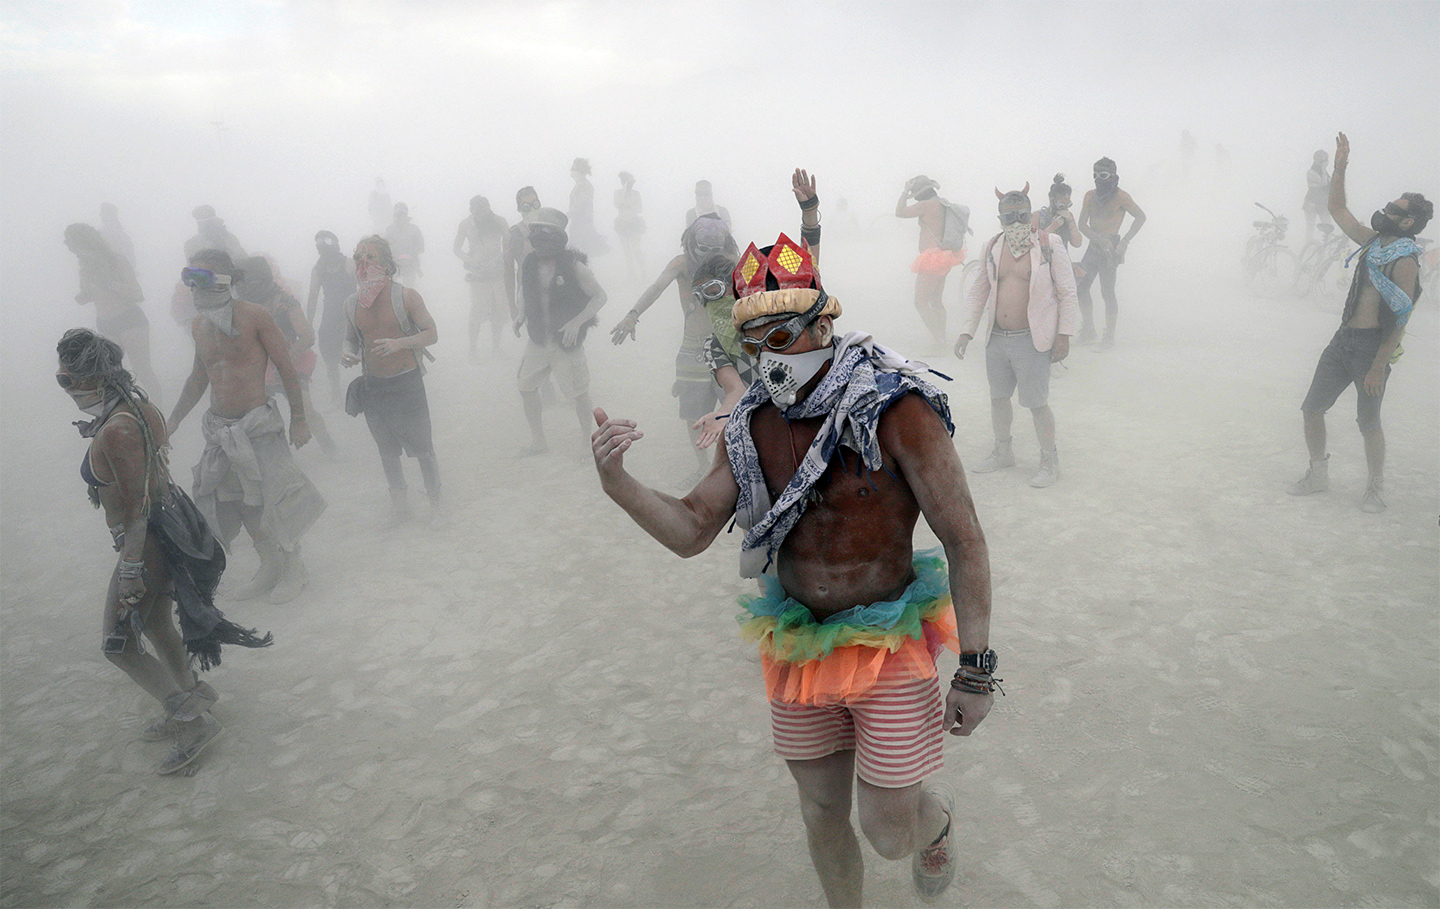 Burning Man participants dance to the music of an art car in the midst of a driving desert dust storm on the 2nd day of the annual Burning Man arts and music festival in the Black Rock Desert of Nevada, U.S. August 29, 2017. REUTERS/Jim Bourg   FOR USE WITH BURNING MAN RELATED REPORTING ONLY. FOR EDITORIAL USE ONLY. NOT FOR SALE FOR MARKETING OR ADVERTISING CAMPAIGNS. NO THIRD PARTY SALES. NOT FOR USE BY REUTERS THIRD PARTY DISTRIBUTORS. - RTX3DX64